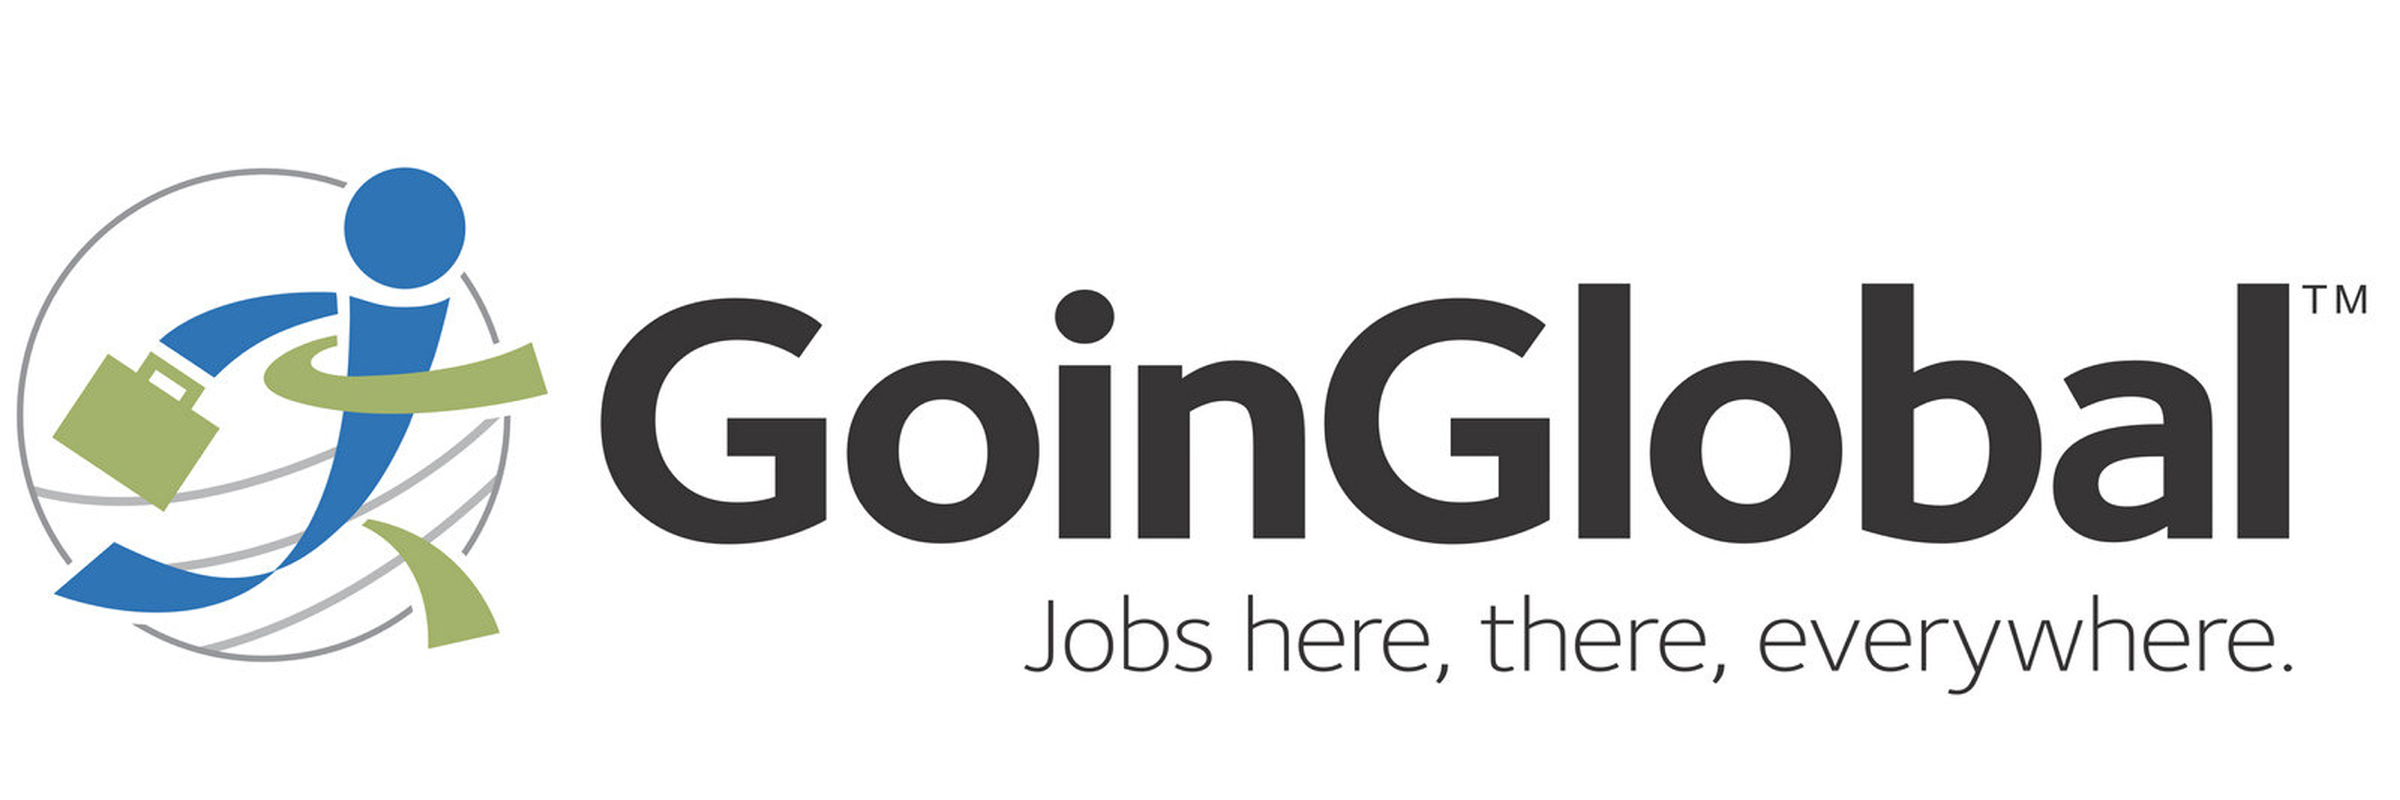 GoinGlobal - Jobs Here, There, Everywhere